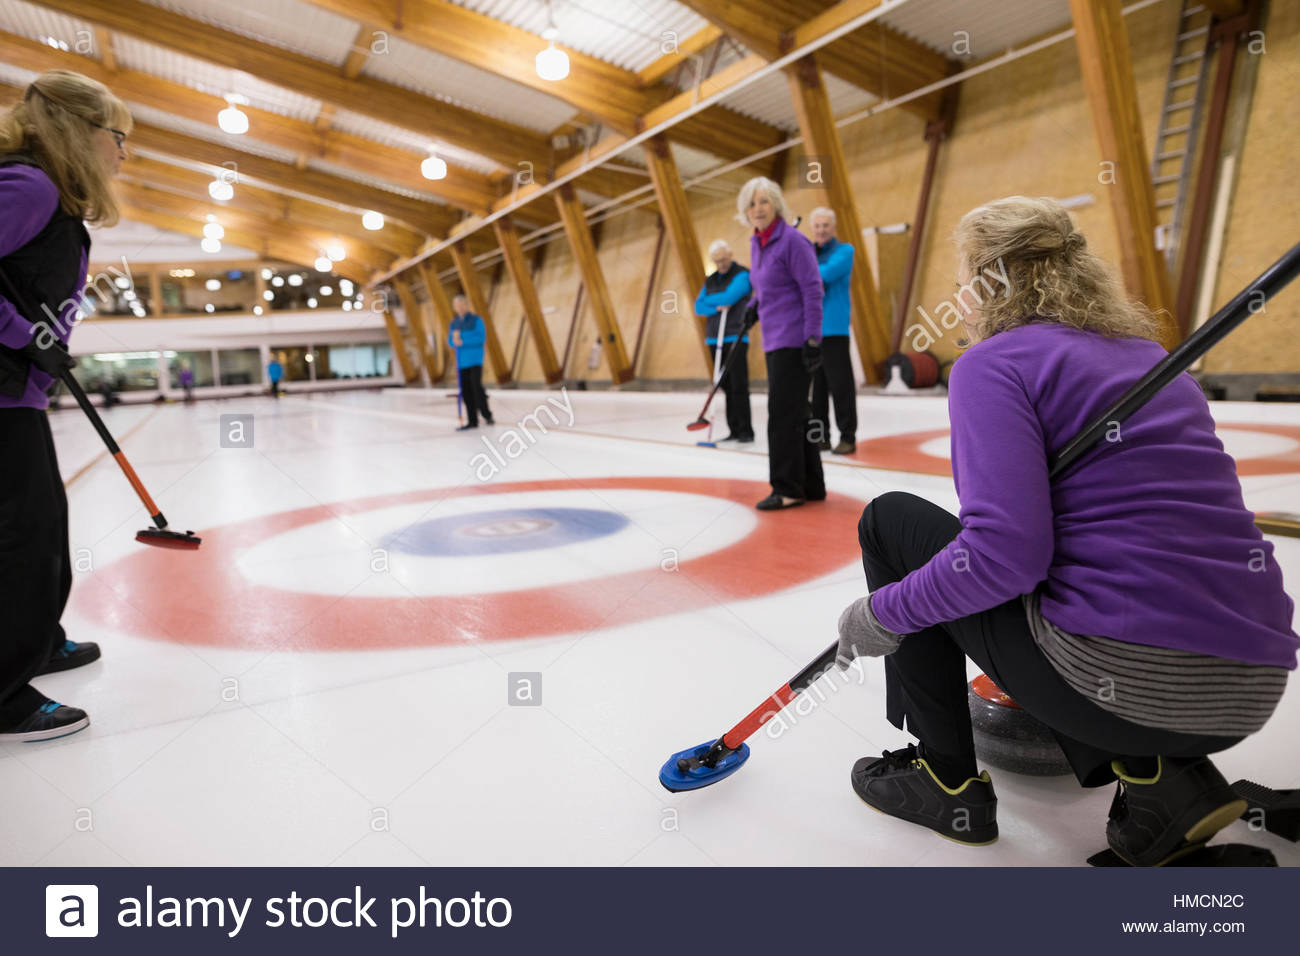 Senior adults curling - Stock Image